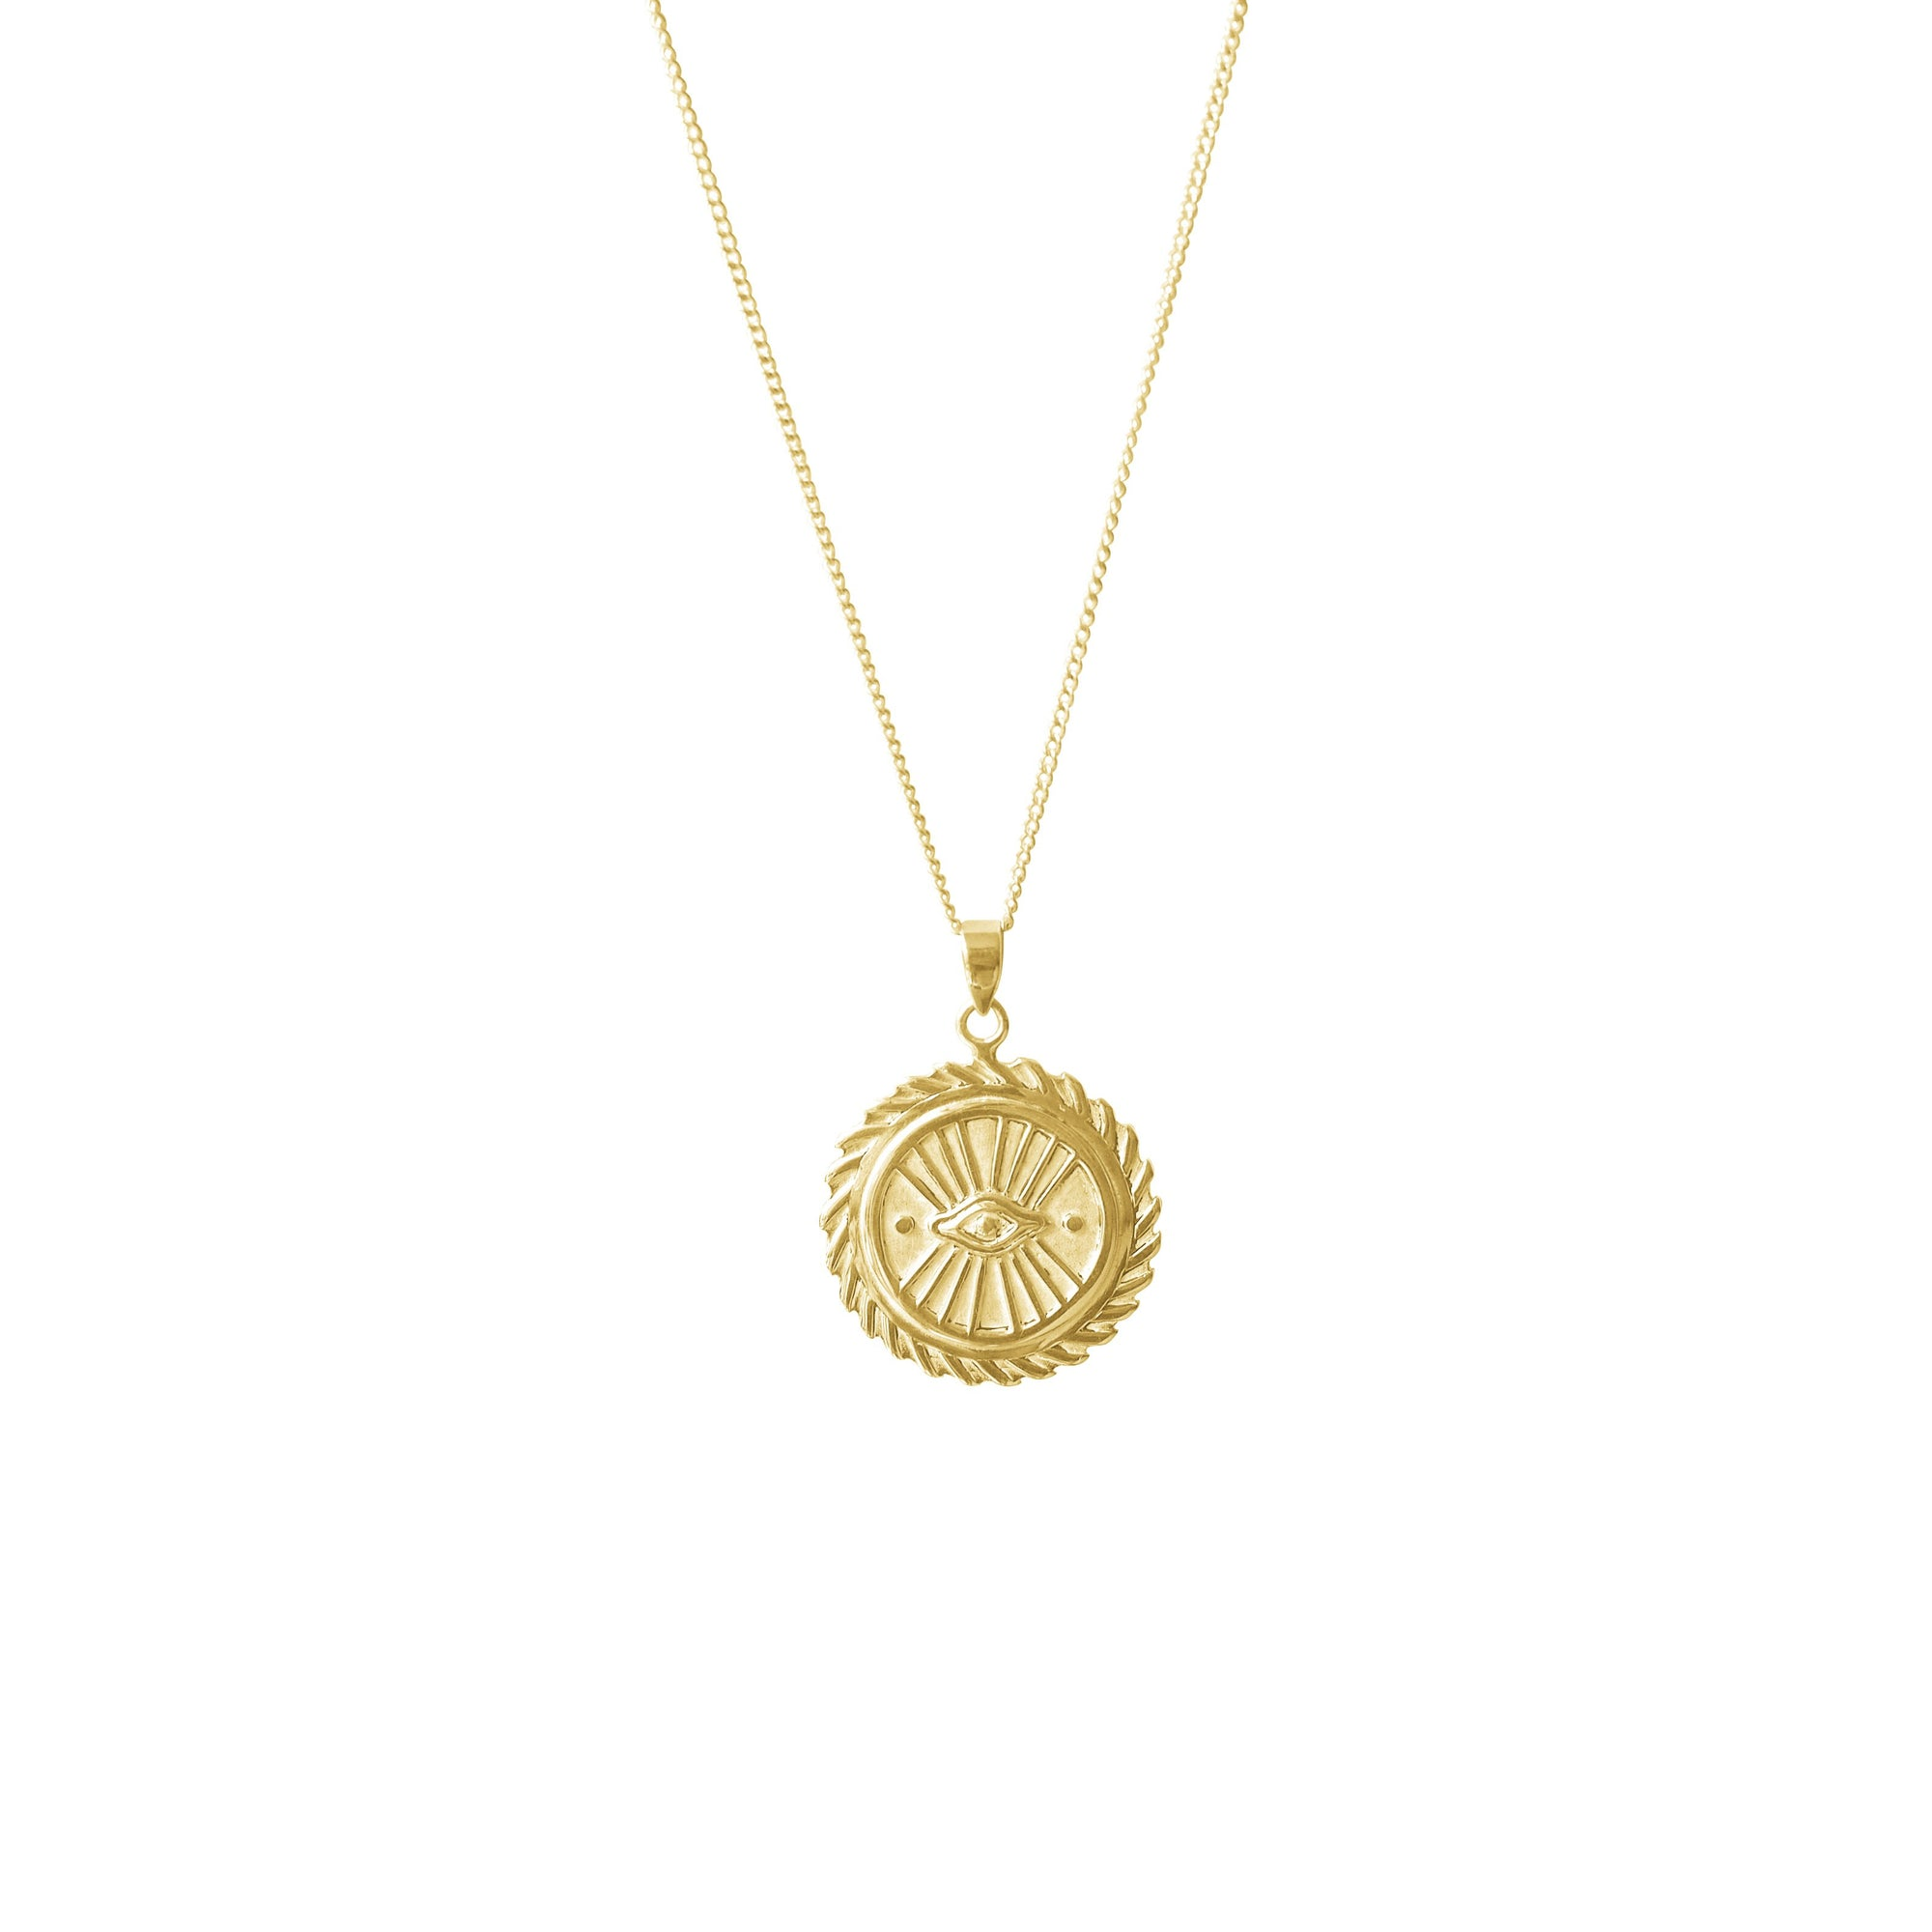 SOLID GOLD - SUZANNE 'PROTECTION' NECKLACE